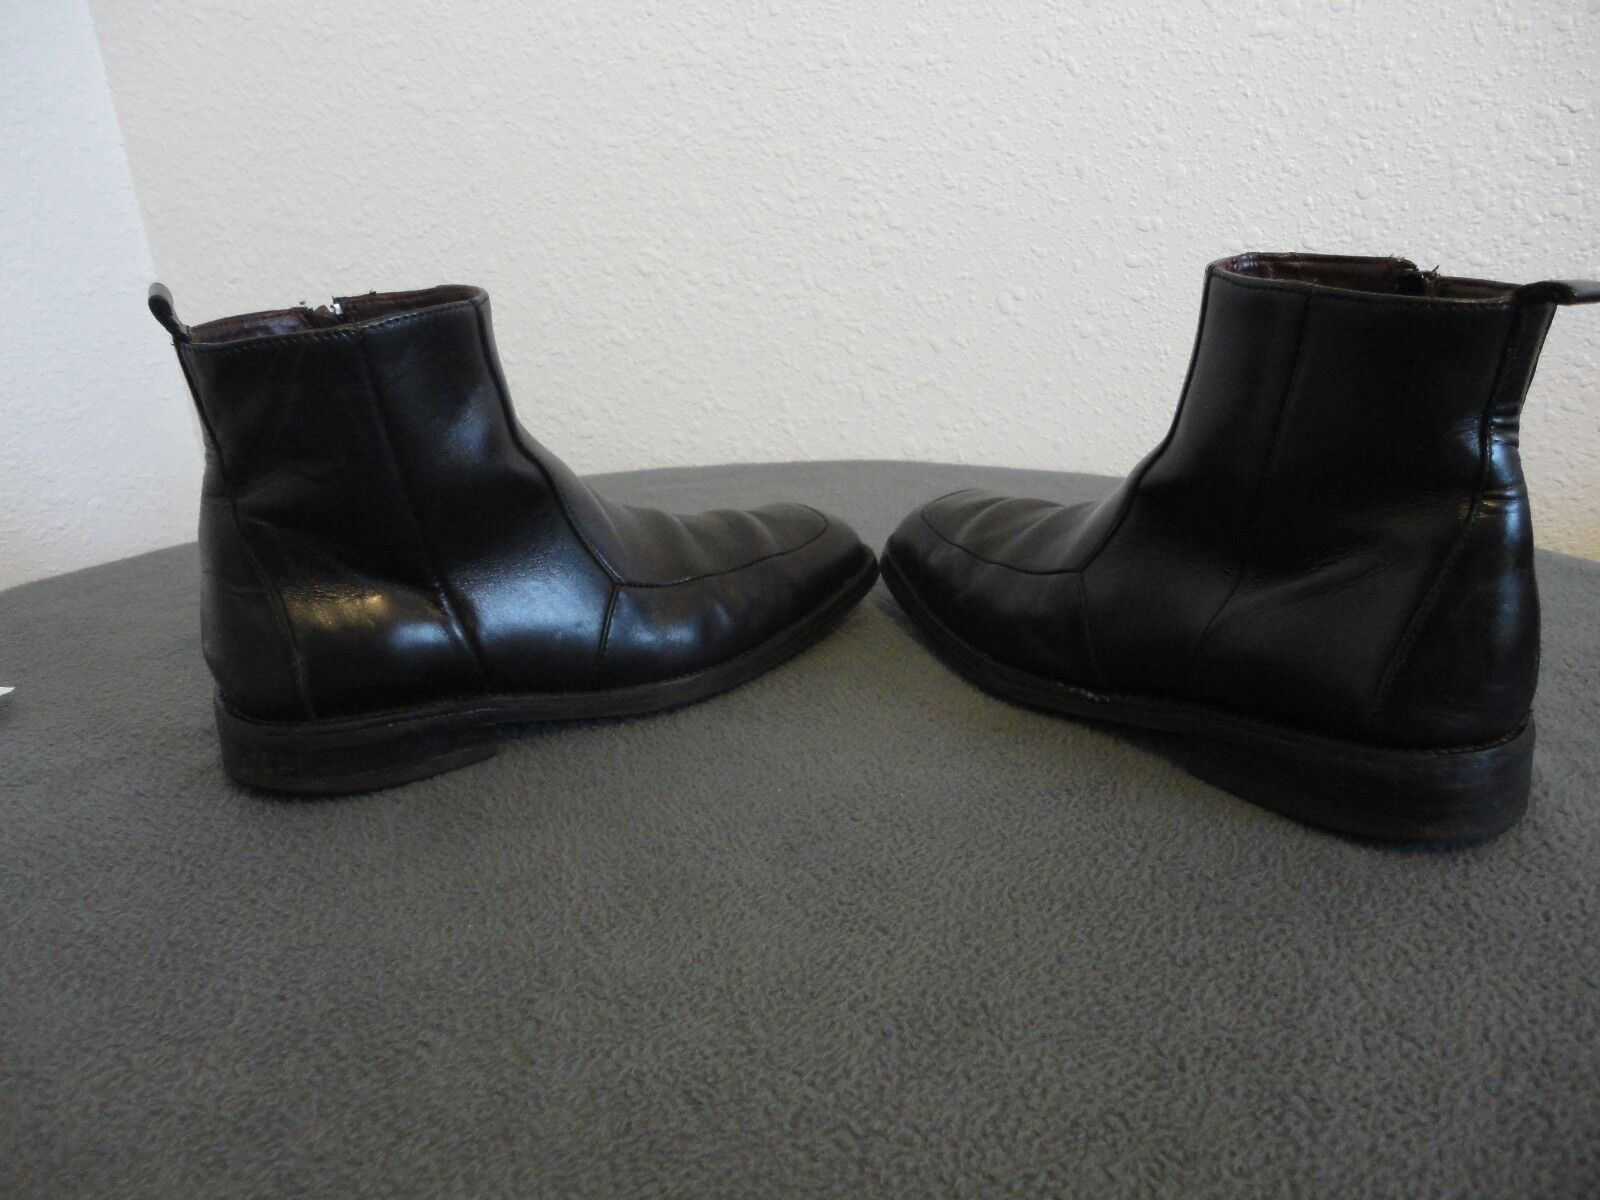 Uomo Uomo Uomo KENNETH COLE nero Leather Zip-Up Ankle NEOLITE stivali sz.9.5 Made in  906df2